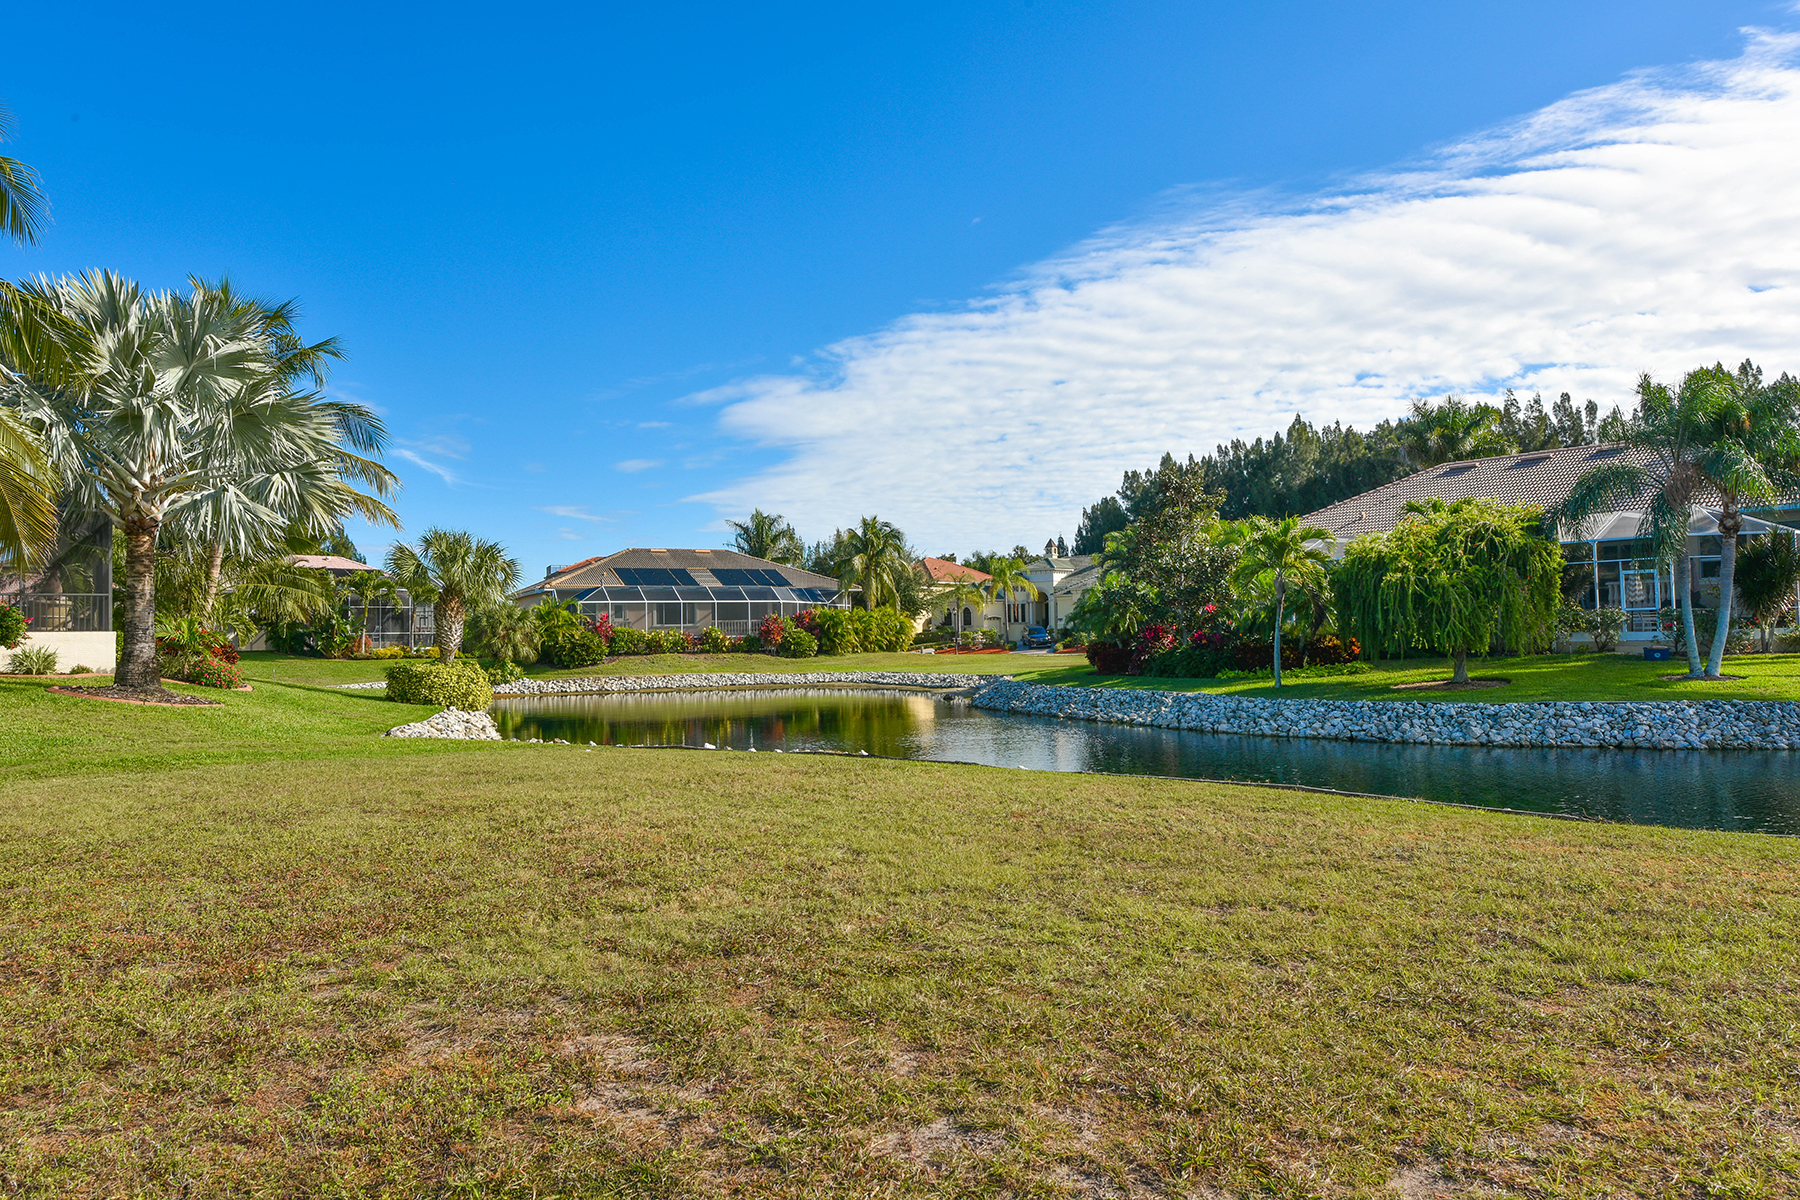 Terreno por un Venta en HARBOUR LANDINGS ESTATES 4011 Commodore Blvd 57 Cortez, Florida, 34215 Estados Unidos